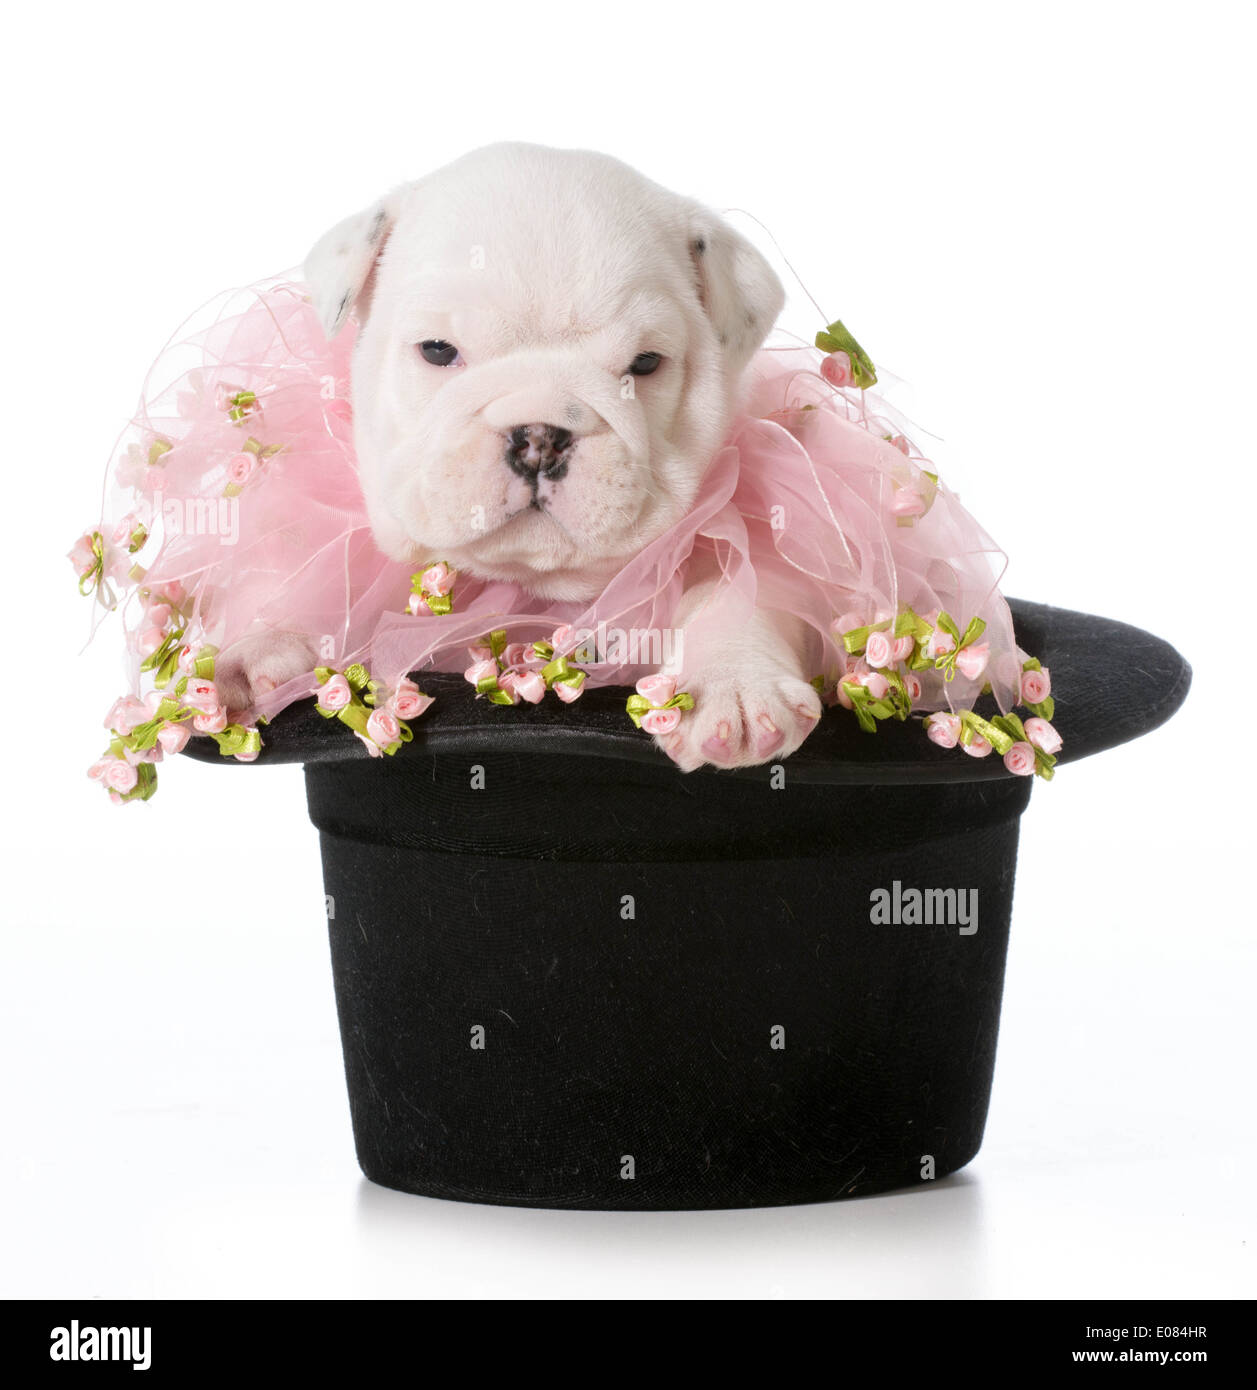 Cute Puppy English Bulldog Puppy Sitting In A Black Tophat Stock Photo Alamy